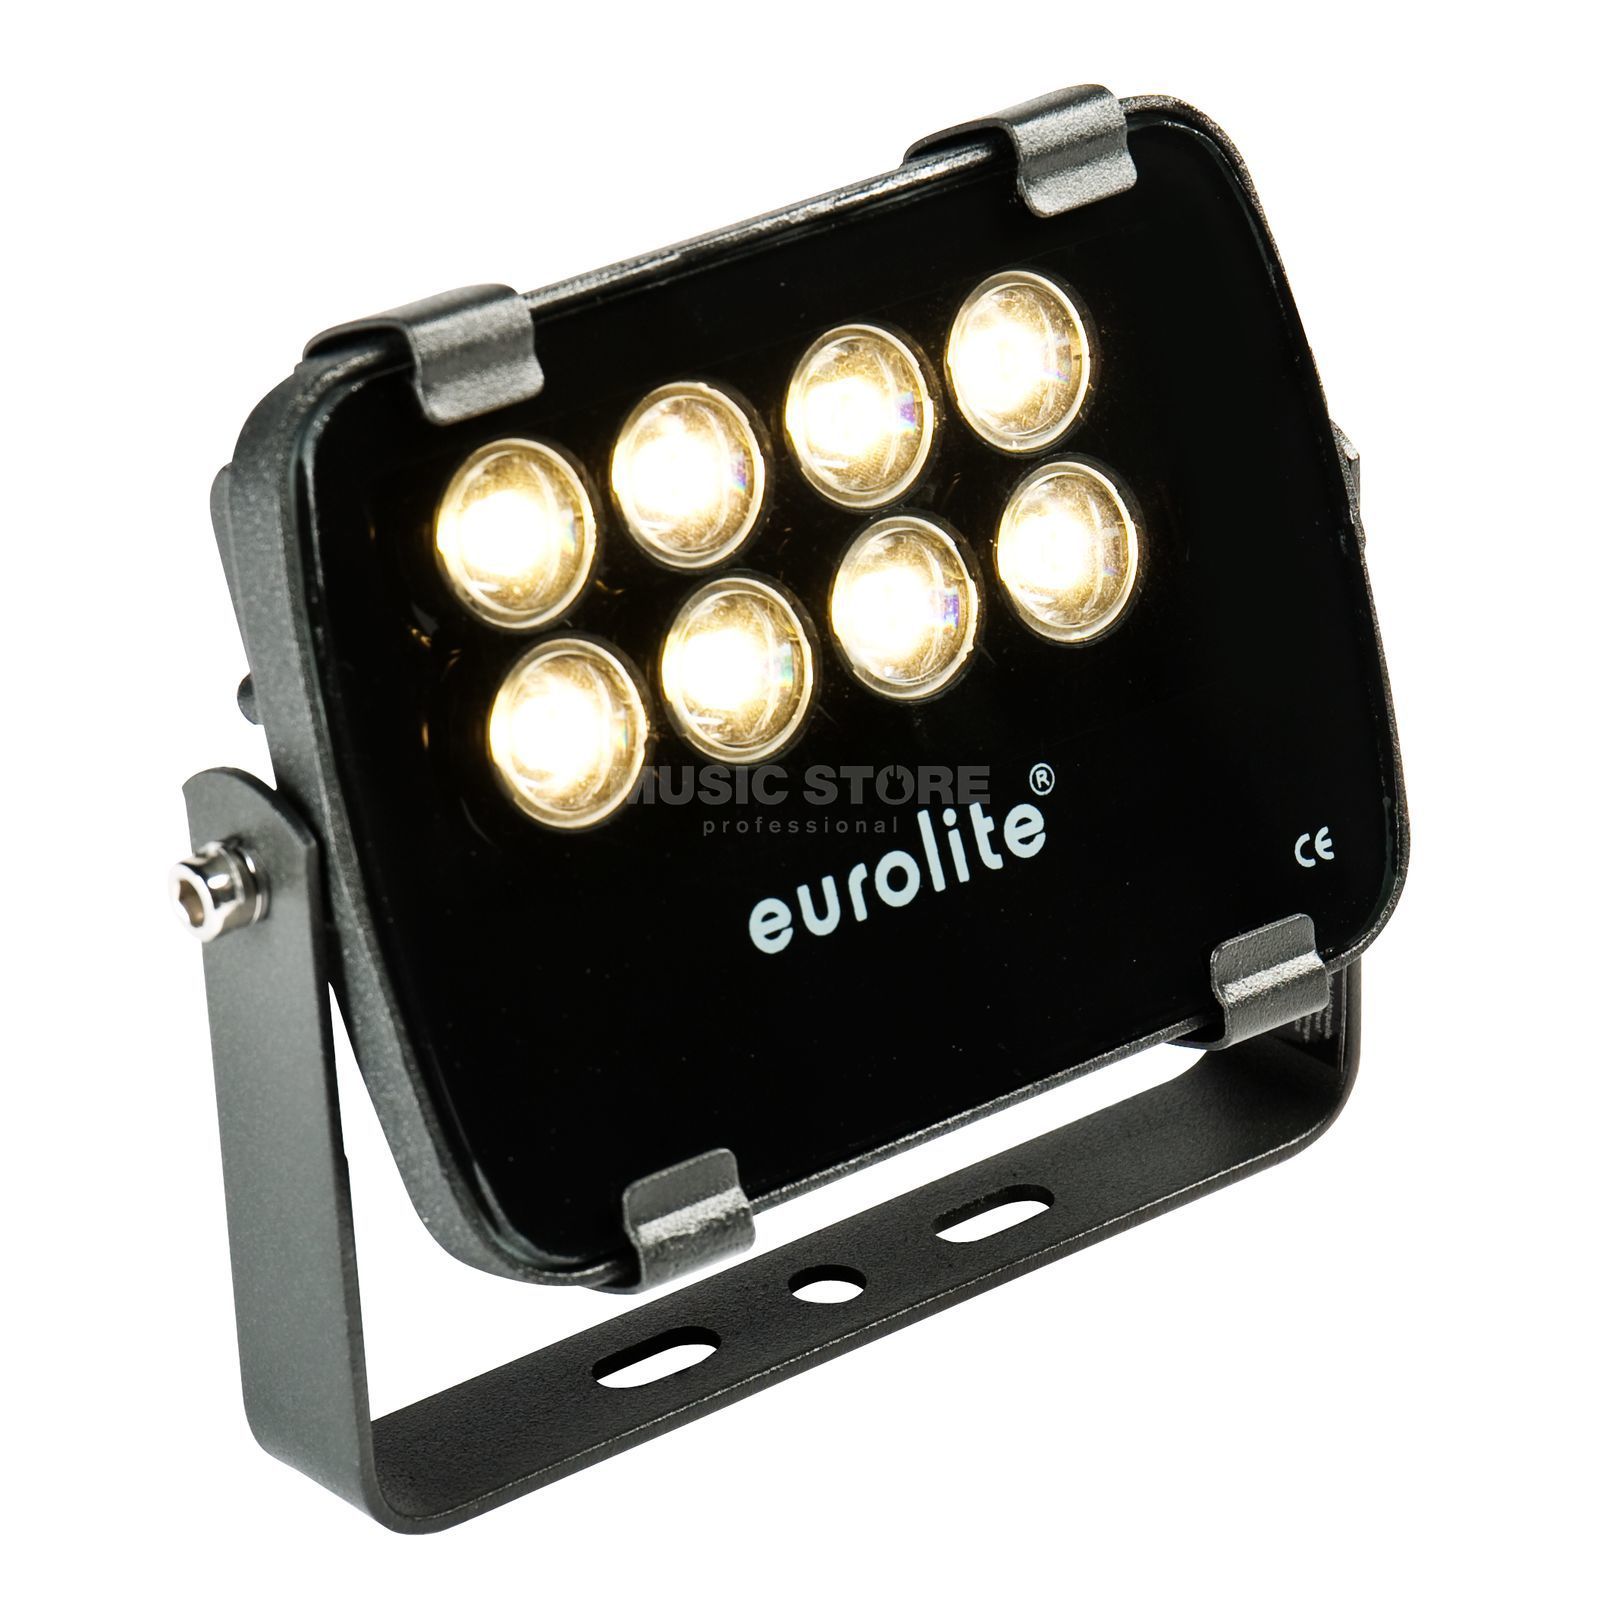 Eurolite LED IP FL-8 3000K 30° IP 56, 8x1W Garden Light Product Image